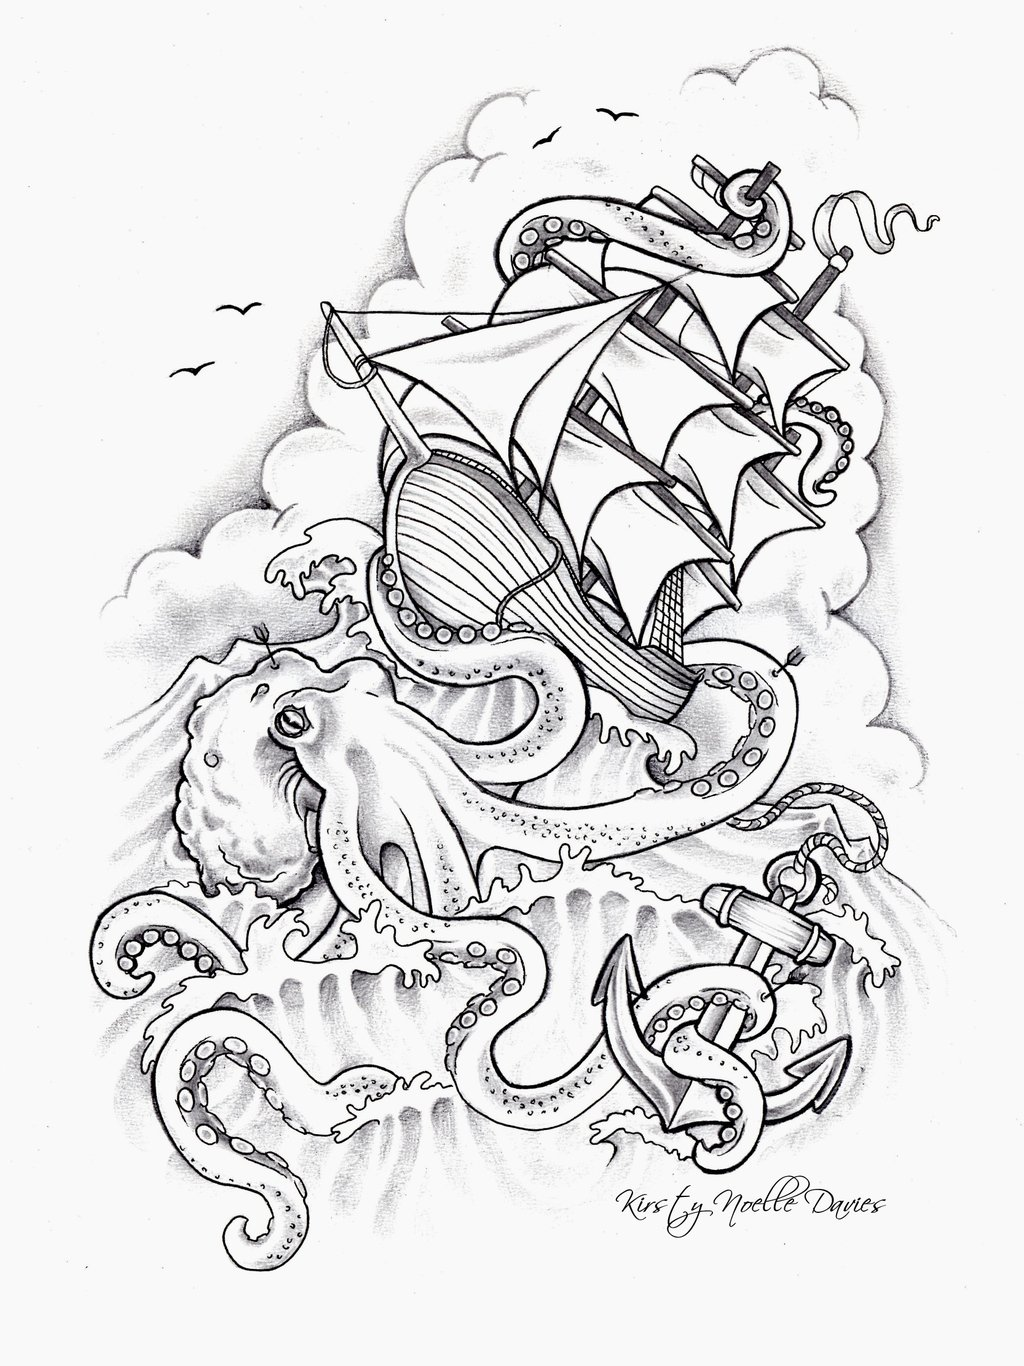 Octopus Anchor Tattoo Sketch photo - 1